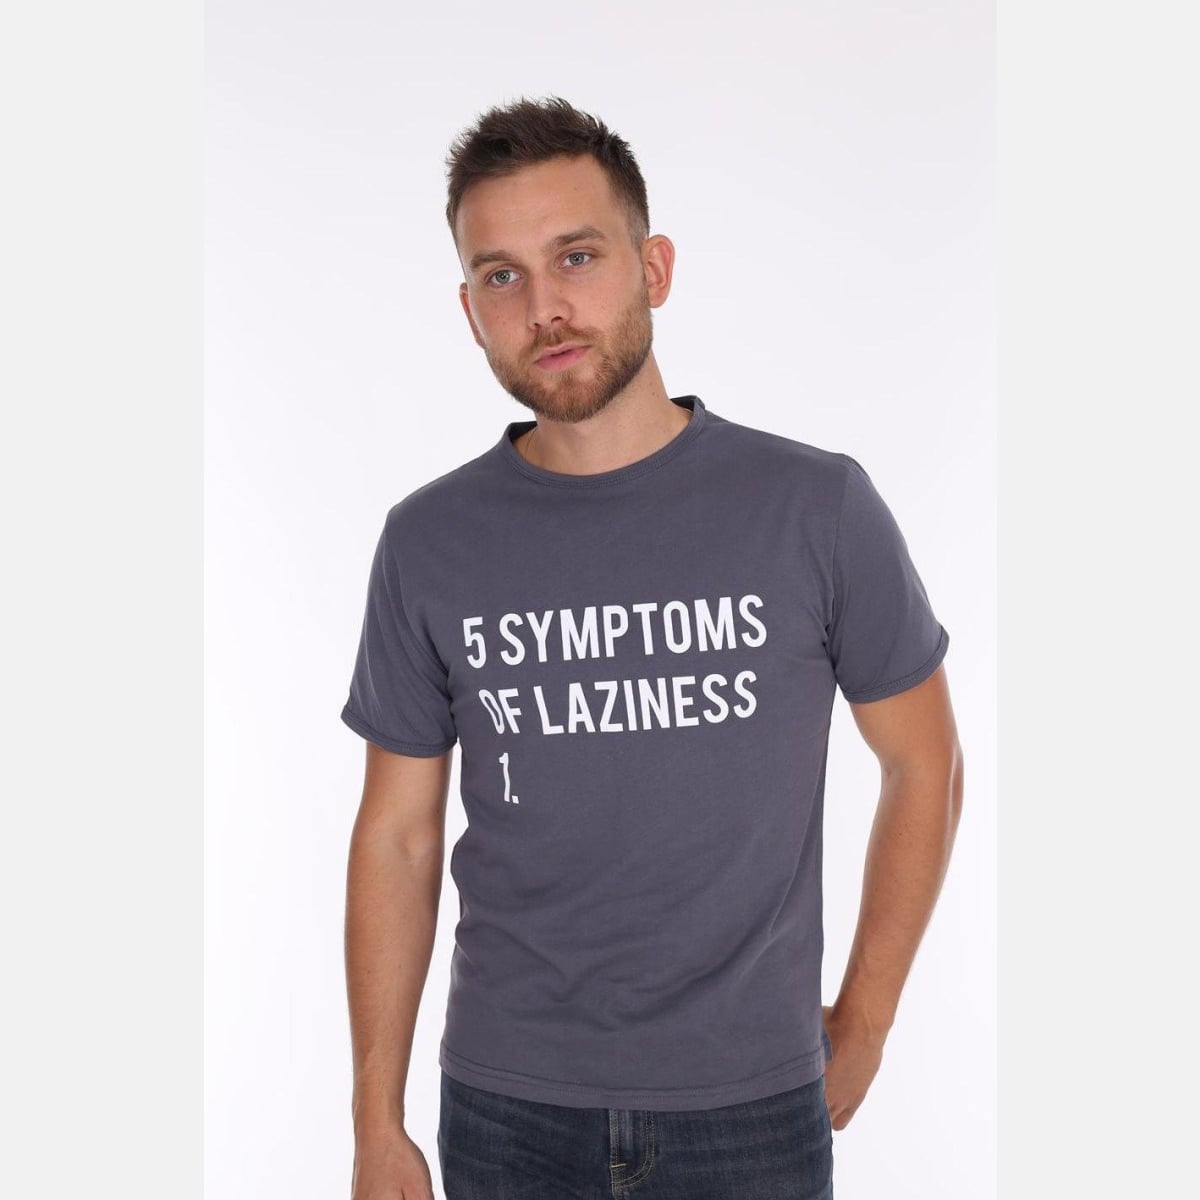 Grey Anthracite 5 Symptoms of Laziness Printed Cotton Men Unisex T-Shirt Tee Top S-Ponder